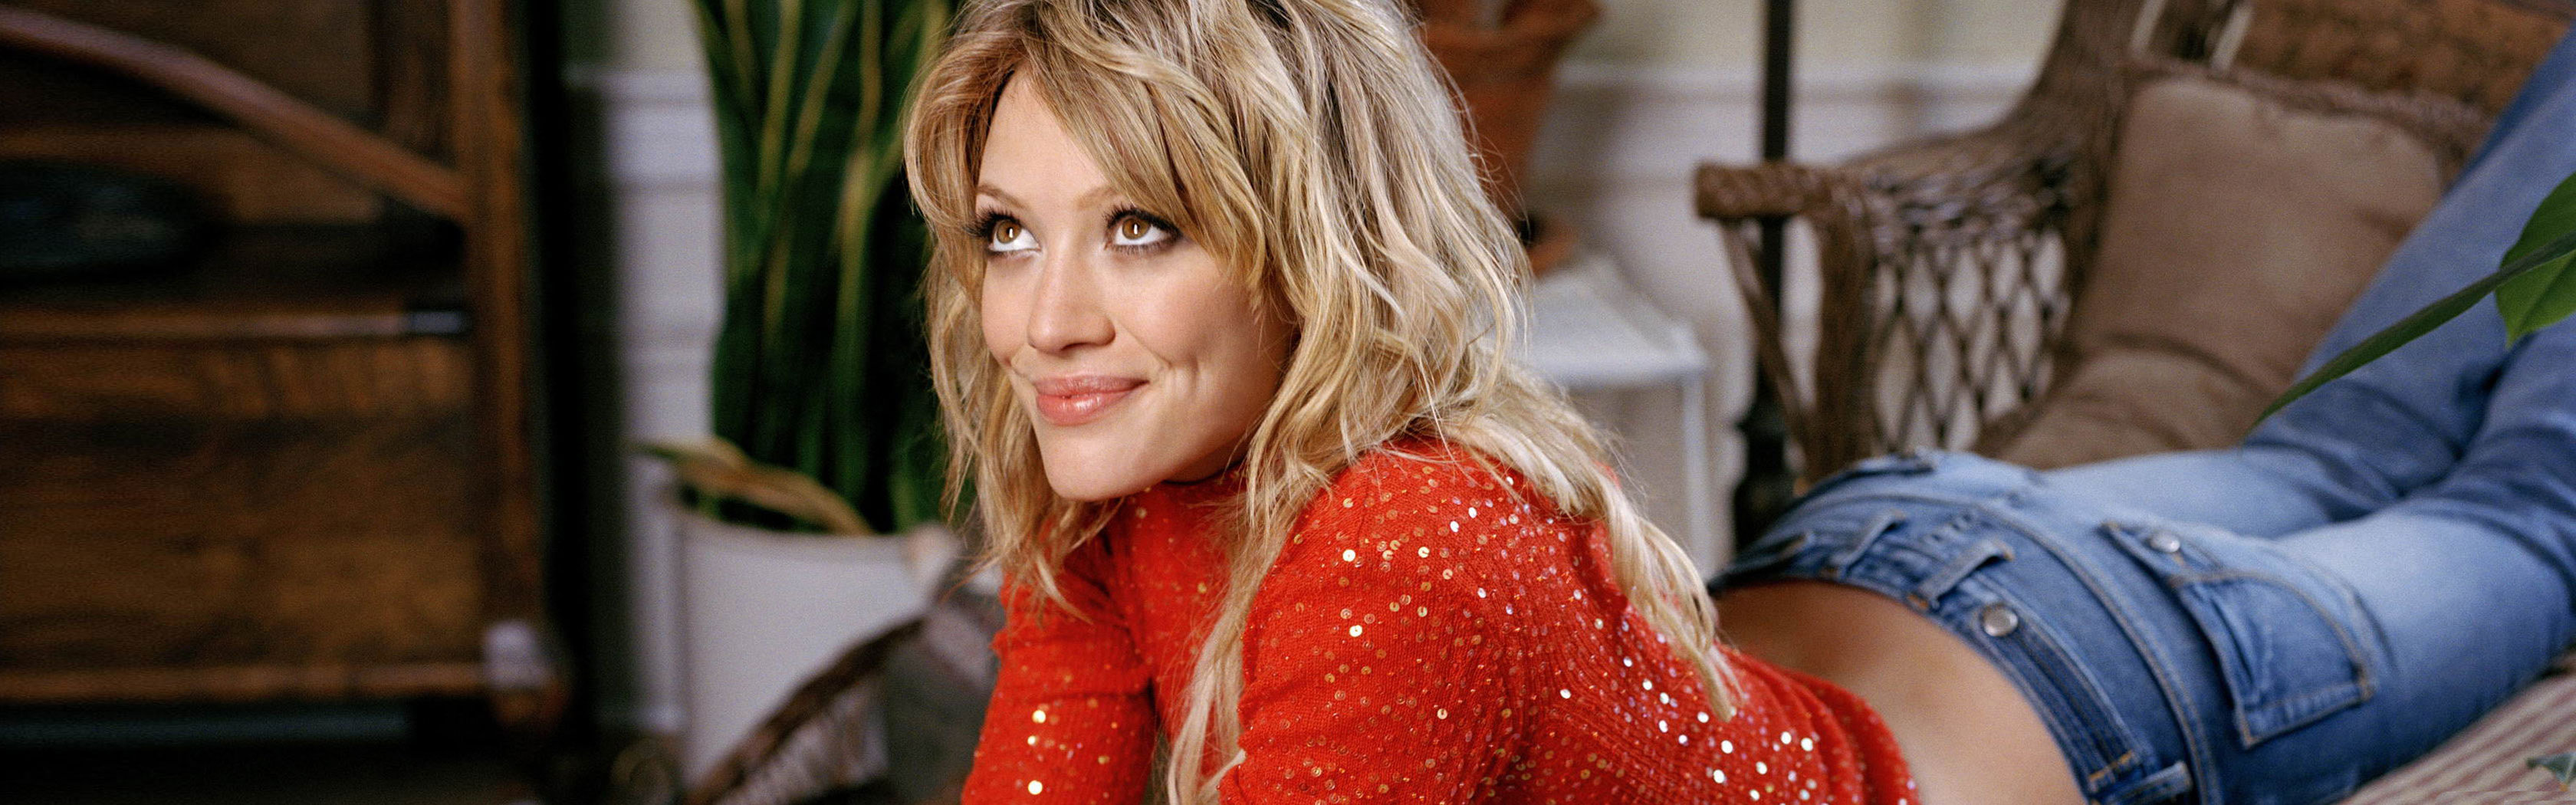 Download dual monitor 3360x1050 Hilary Duff PC background ID:347855 for free